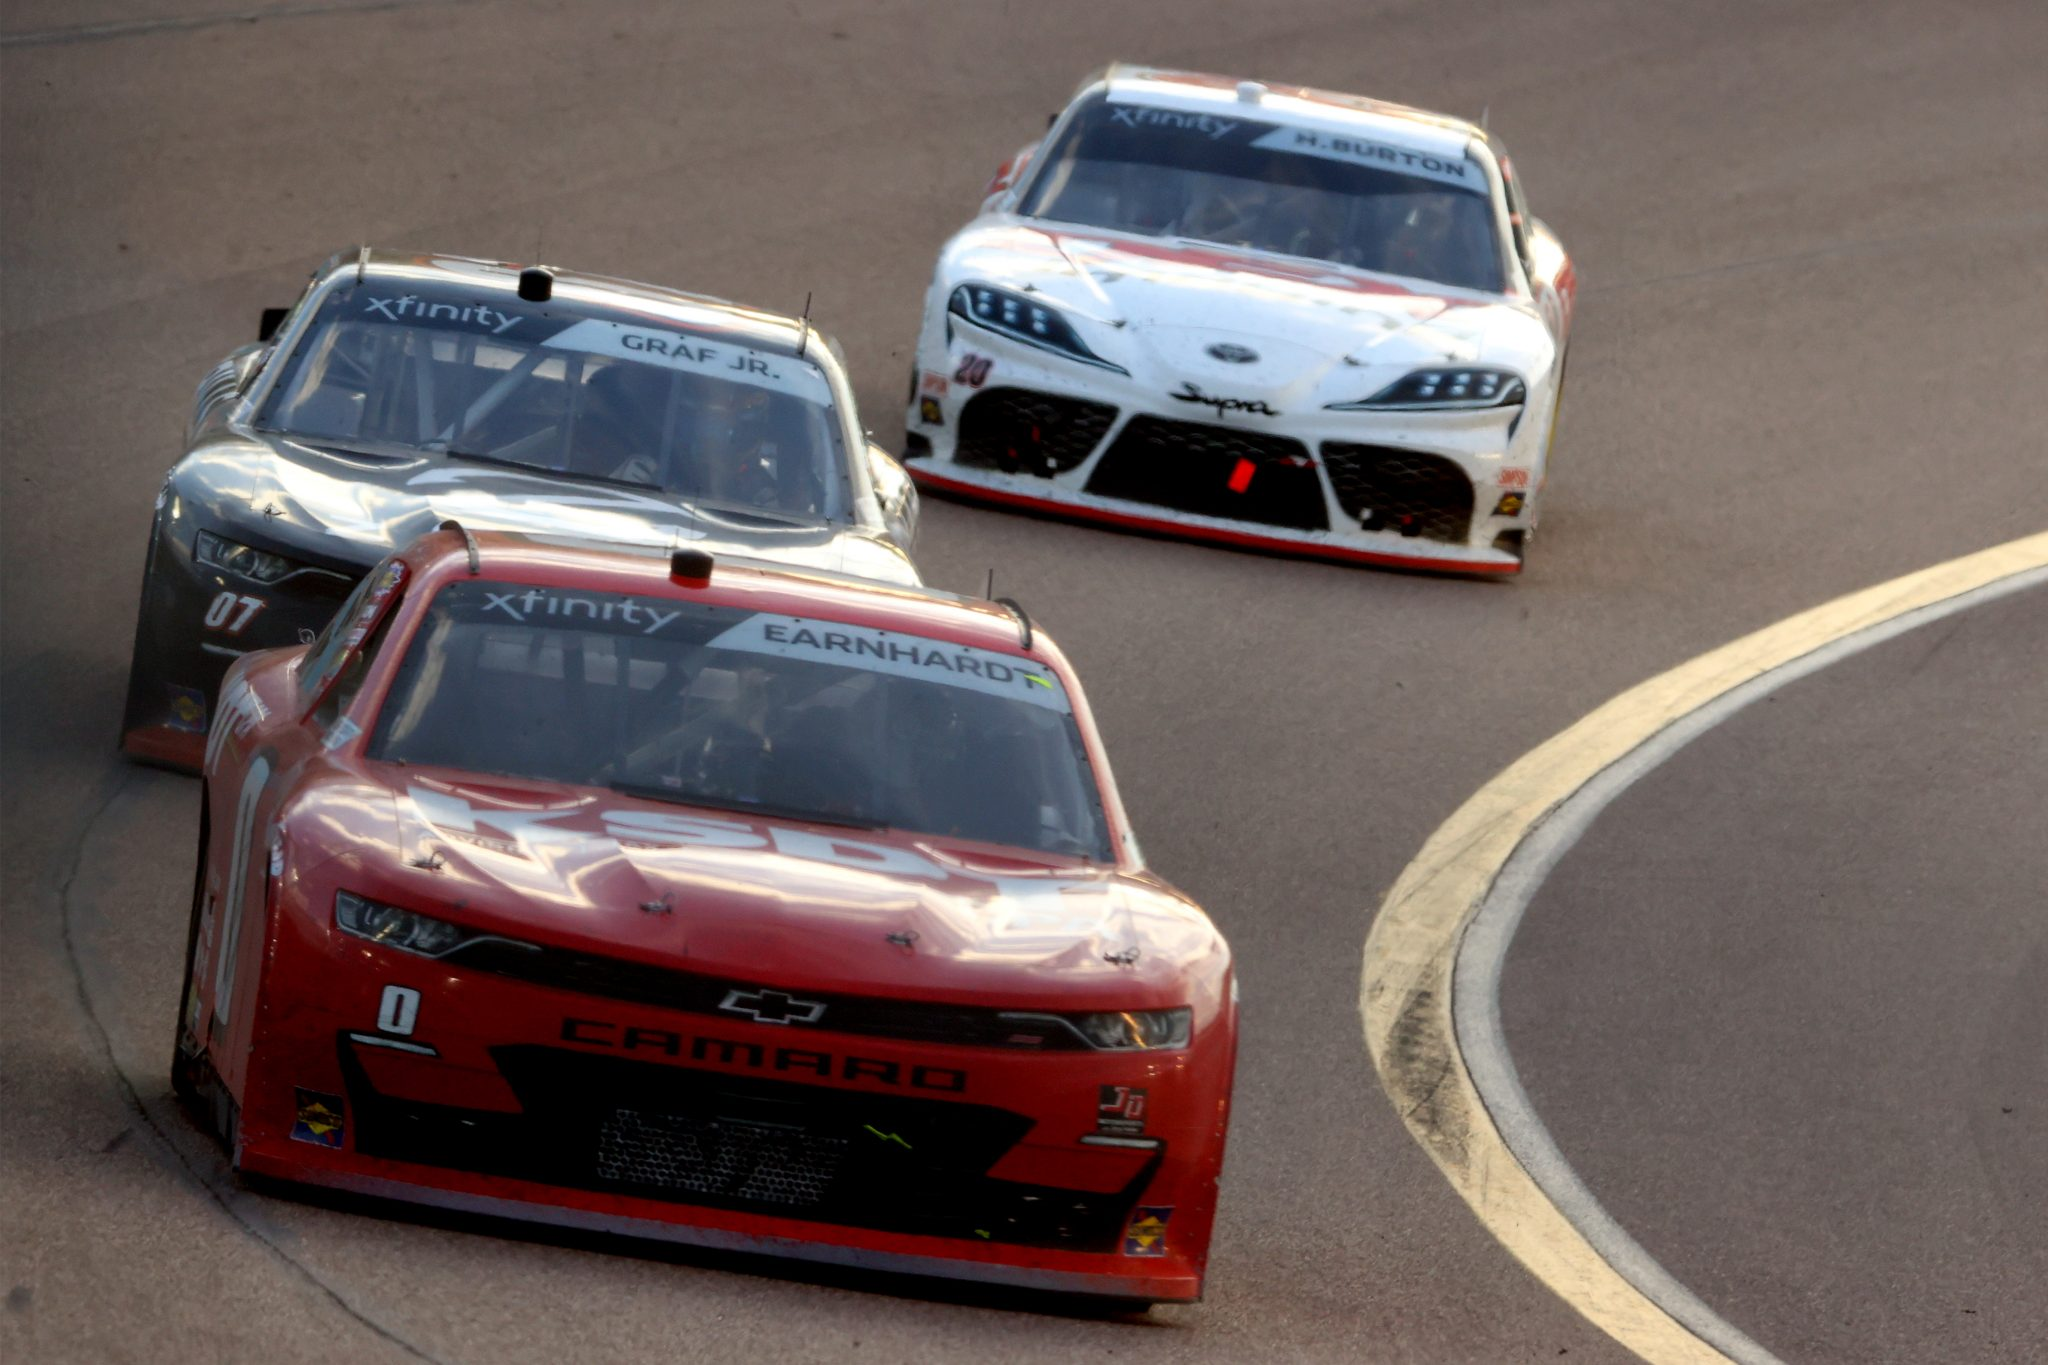 AVONDALE, ARIZONA - MARCH 13: Jeffrey Earnhardt, driver of the #0 KSDT Chevrolet, leads the field during the NASCAR Xfinity Series Call 811 Before You Dig 200 presented by Arizona 811 at Phoenix Raceway on March 13, 2021 in Avondale, Arizona. (Photo by Abbie Parr/Getty Images) | Getty Images